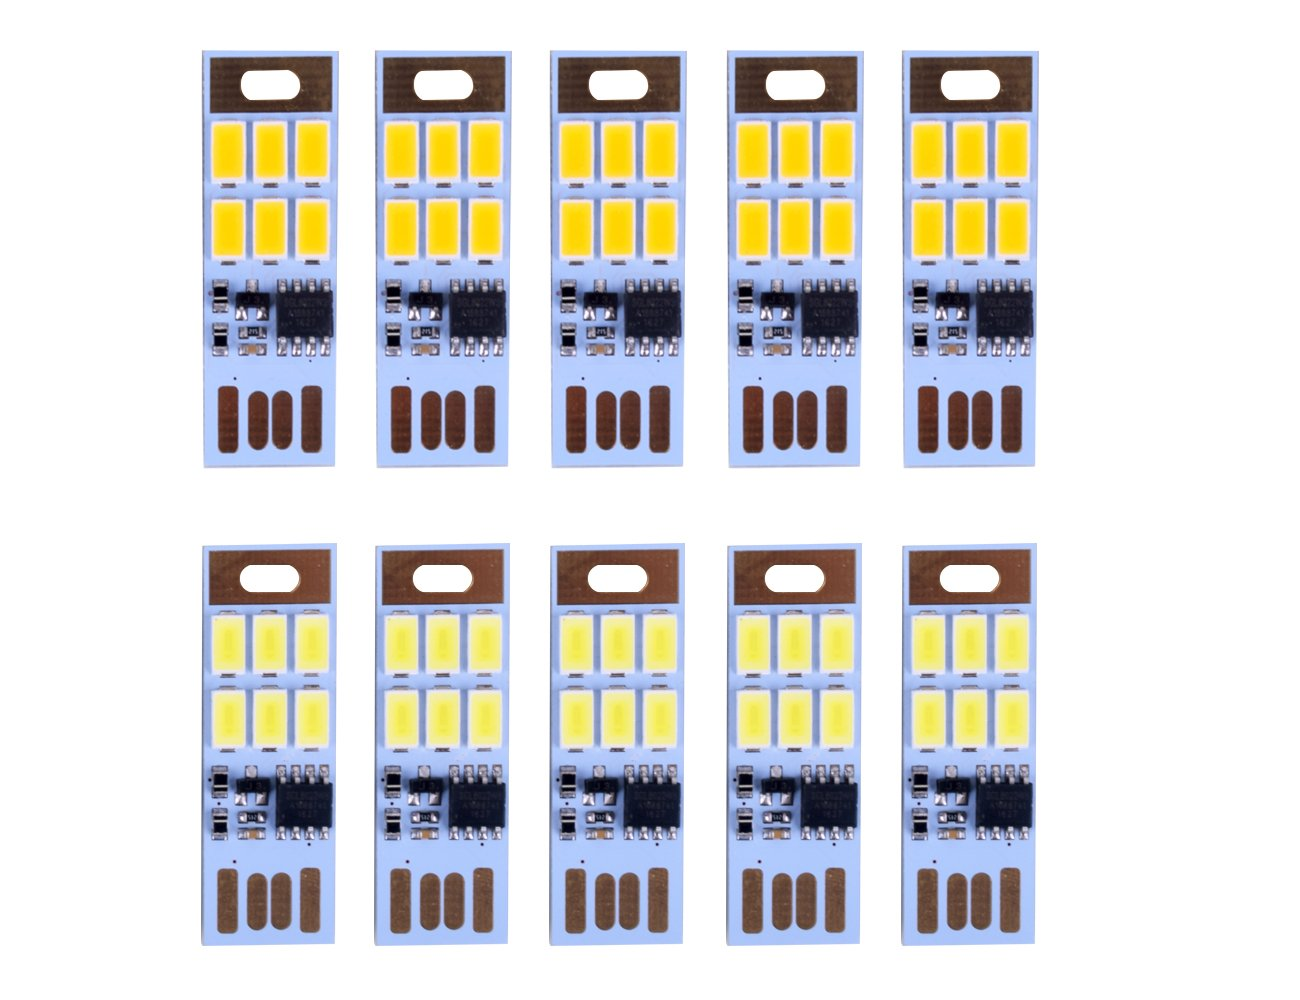 HUAHA 10pcs USB Mini LED Lights 6 Keychain Lights Lamp with Smart Touch Electrodeless Dimming Switch for Laptop,Emergency Security Lighting Home Decoratio (5 Warm+5 White) by HUAHA